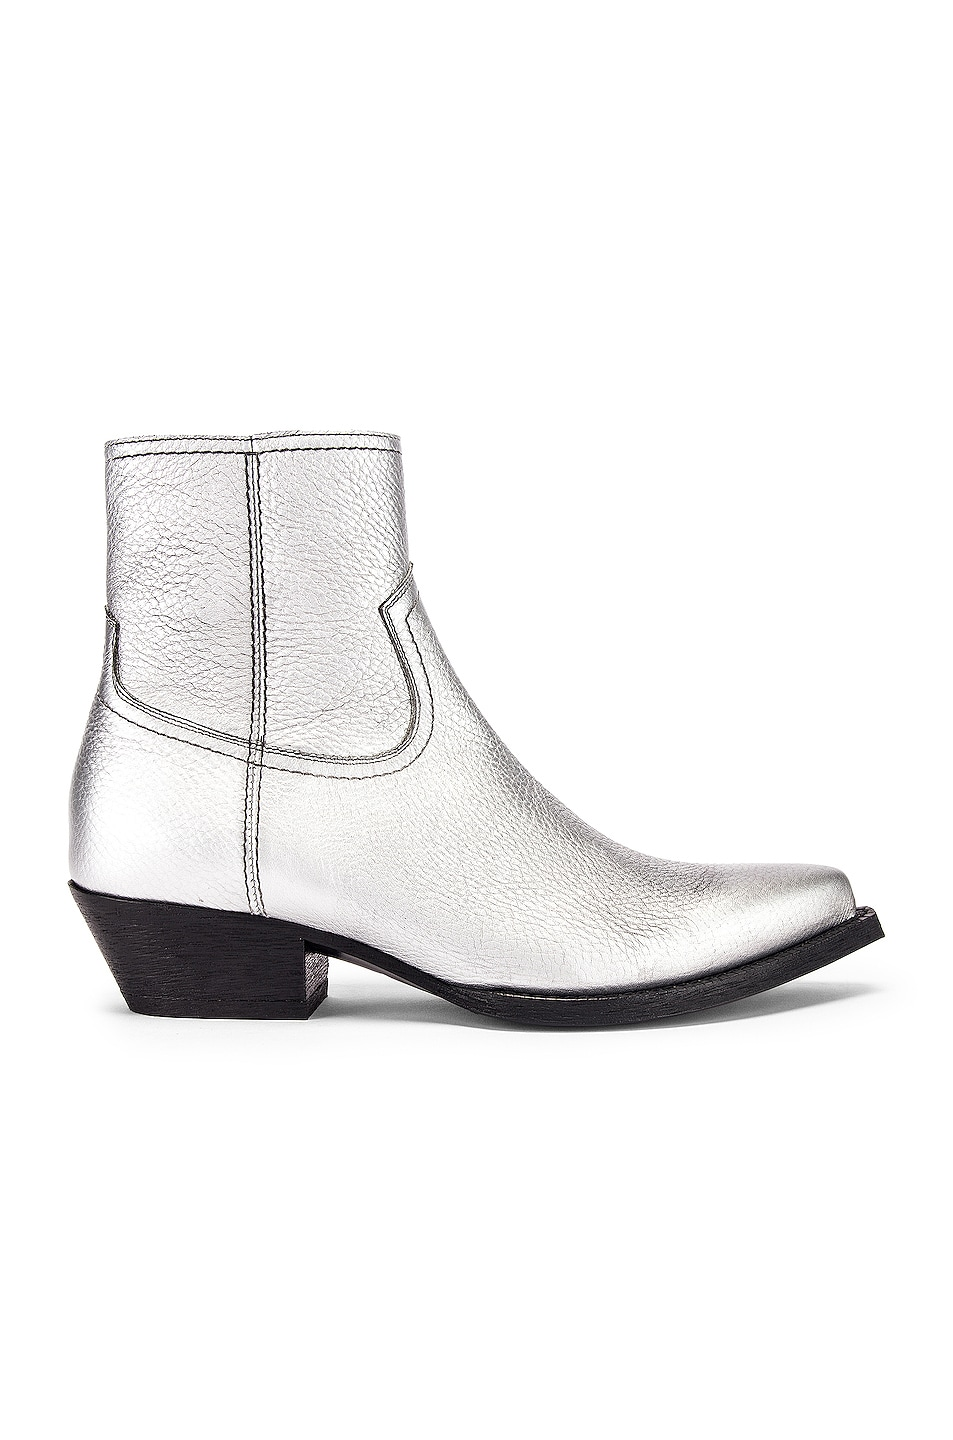 Image 1 of Saint Laurent Lukas Ankle Boots in Silver